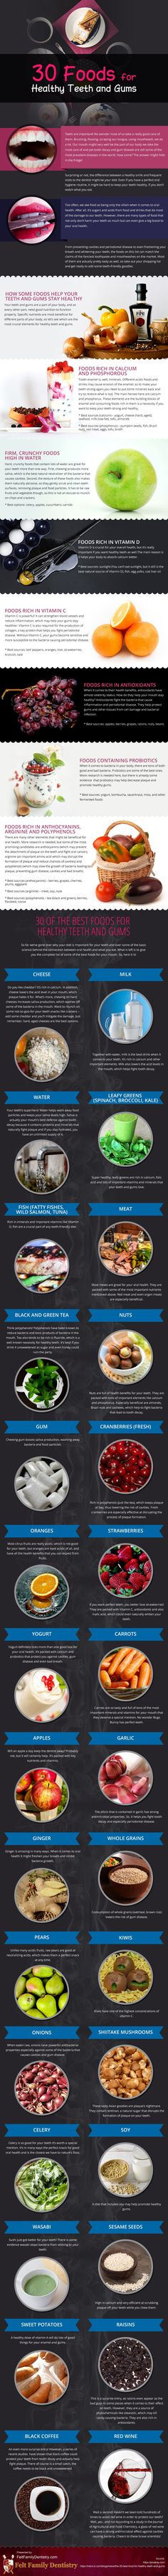 SEO friends Felt Family Dentistry infographic on 30 Foods for Healthy Teeth and Gums.